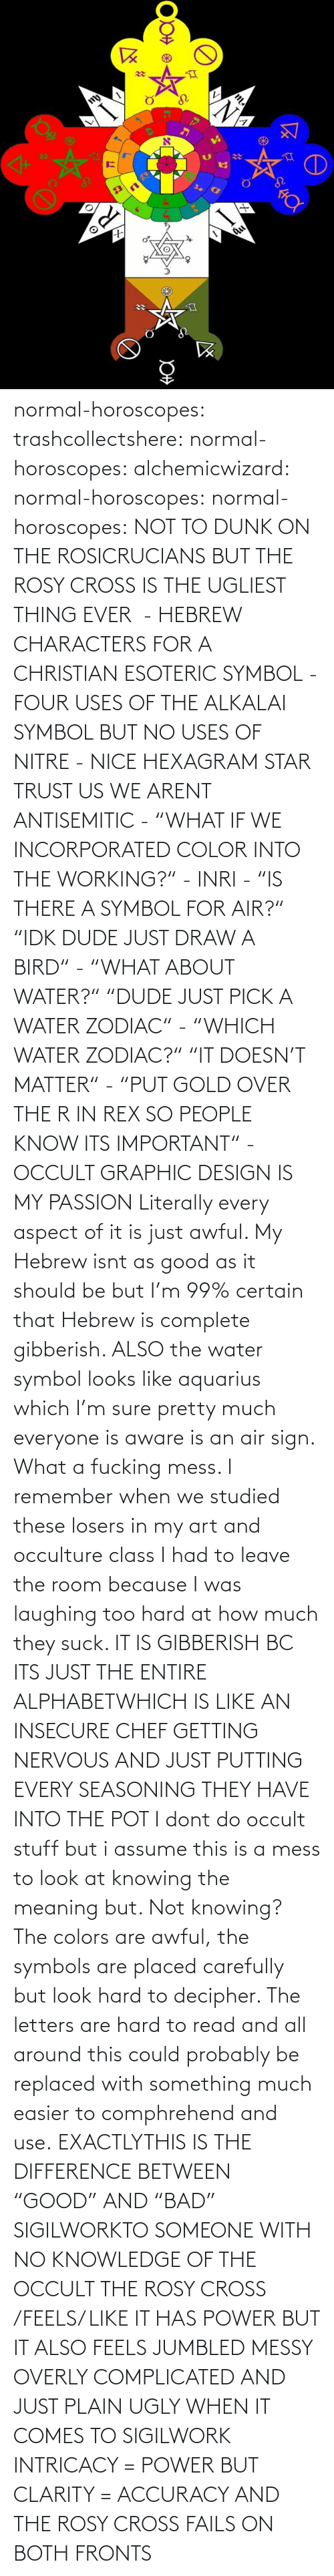 "bird: normal-horoscopes:  trashcollectshere: normal-horoscopes:   alchemicwizard:  normal-horoscopes:  normal-horoscopes: NOT TO DUNK ON THE ROSICRUCIANS BUT THE ROSY CROSS IS THE UGLIEST THING EVER  - HEBREW CHARACTERS FOR A CHRISTIAN ESOTERIC SYMBOL - FOUR USES OF THE ALKALAI SYMBOL BUT NO USES OF NITRE - NICE HEXAGRAM STAR TRUST US WE ARENT ANTISEMITIC - ""WHAT IF WE INCORPORATED COLOR INTO THE WORKING?"" - INRI - ""IS THERE A SYMBOL FOR AIR?"" ""IDK DUDE JUST DRAW A BIRD"" - ""WHAT ABOUT WATER?"" ""DUDE JUST PICK A WATER ZODIAC"" - ""WHICH WATER ZODIAC?"" ""IT DOESN'T MATTER"" - ""PUT GOLD OVER THE R IN REX SO PEOPLE KNOW ITS IMPORTANT"" - OCCULT GRAPHIC DESIGN IS MY PASSION  Literally every aspect of it is just awful. My Hebrew isnt as good as it should be but I'm 99% certain that Hebrew is complete gibberish.  ALSO the water symbol looks like aquarius which I'm sure pretty much everyone is aware is an air sign. What a fucking mess.  I remember when we studied these losers in my art and occulture class I had to leave the room because I was laughing too hard at how much they suck.   IT IS GIBBERISH BC ITS JUST THE ENTIRE ALPHABETWHICH IS LIKE AN INSECURE CHEF GETTING NERVOUS AND JUST PUTTING EVERY SEASONING THEY HAVE INTO THE POT     I dont do occult stuff but i assume this is a mess to look at knowing the meaning but. Not knowing? The colors are awful, the symbols are placed carefully but look hard to decipher. The letters are hard to read and all around this could probably be replaced with something much easier to comphrehend and use.  EXACTLYTHIS IS THE DIFFERENCE BETWEEN ""GOOD"" AND ""BAD"" SIGILWORKTO SOMEONE WITH NO KNOWLEDGE OF THE OCCULT THE ROSY CROSS /FEELS/ LIKE IT HAS POWER BUT IT ALSO FEELS JUMBLED MESSY OVERLY COMPLICATED AND JUST PLAIN UGLY WHEN IT COMES TO SIGILWORK INTRICACY = POWER BUT CLARITY = ACCURACY AND THE ROSY CROSS FAILS ON BOTH FRONTS"